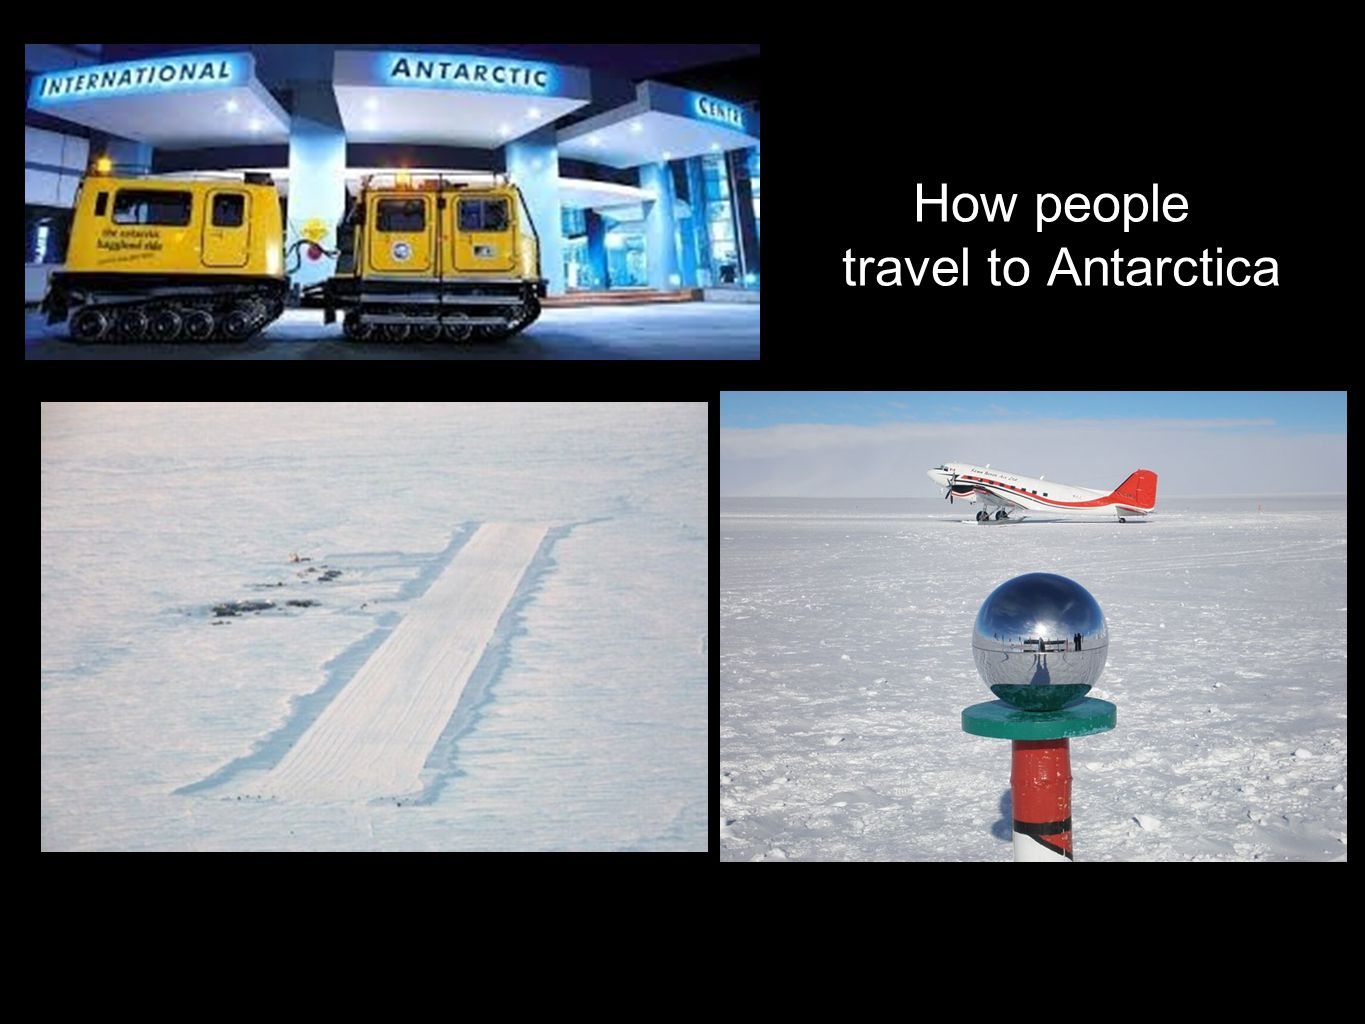 How people travel to Antarctica